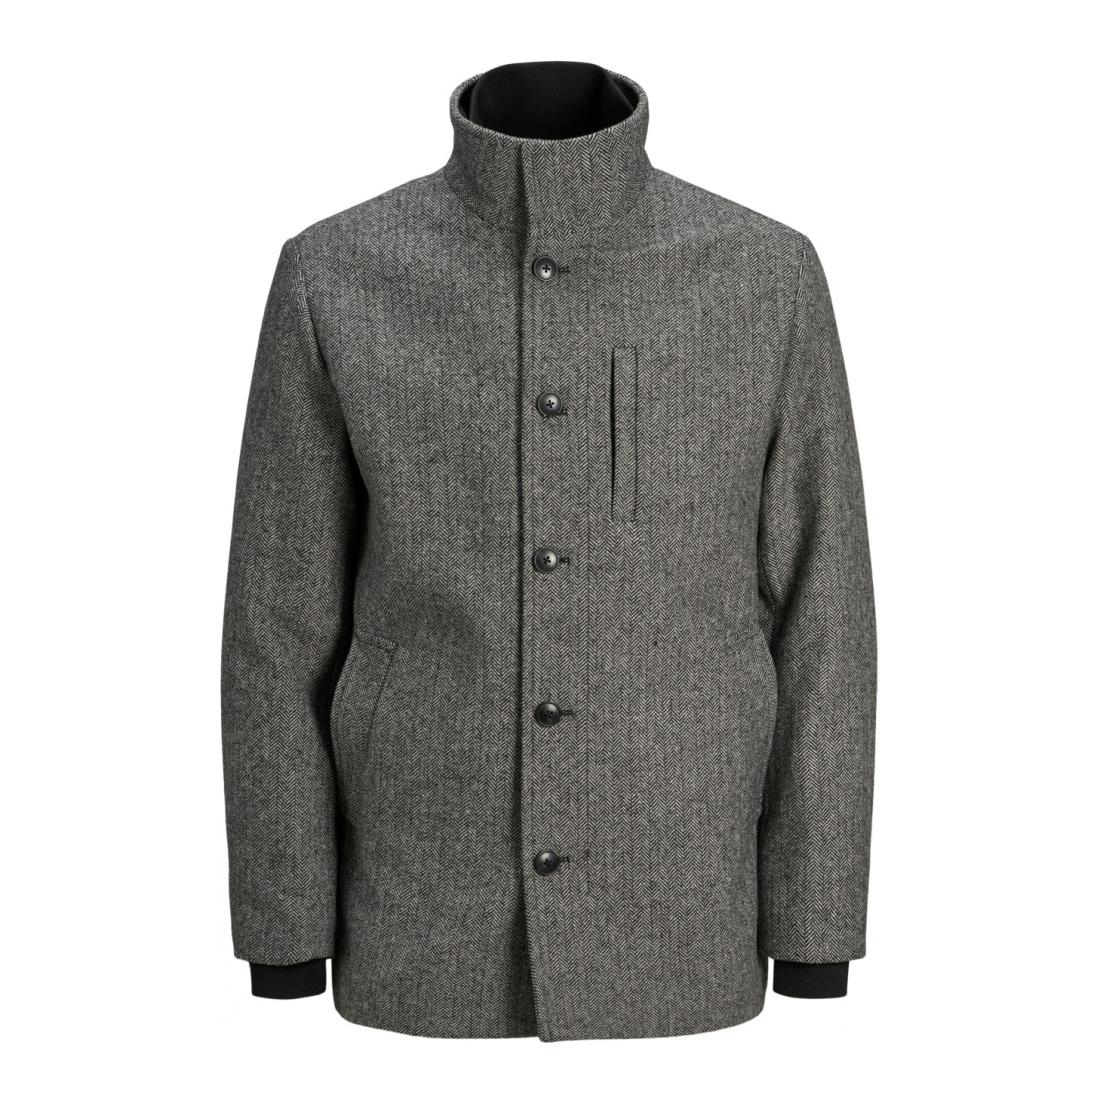 Jack & Jones Jacke lang Herren JJDUAL WOOL JACKET